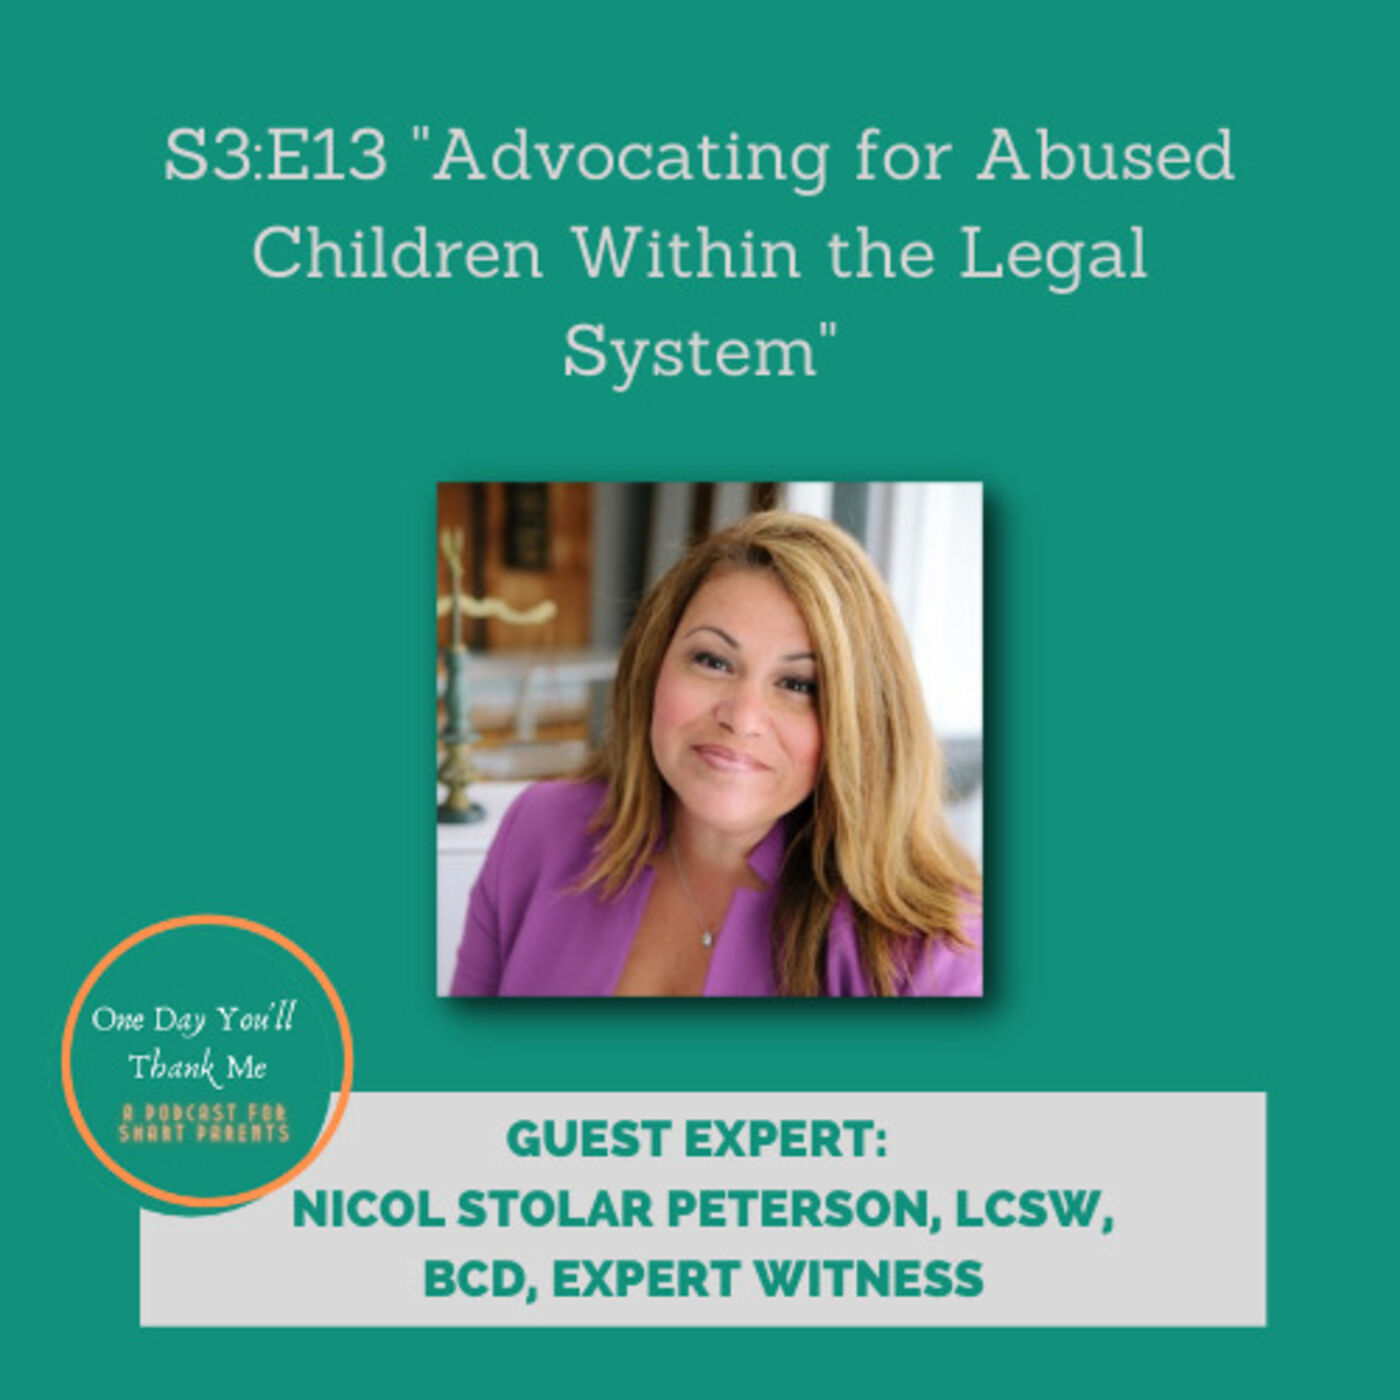 S3: E13 Guest Expert: Nicol Stolar Peterson, LCSW and Expert Witness, Identifying Child Abuse and Maltreatmentand